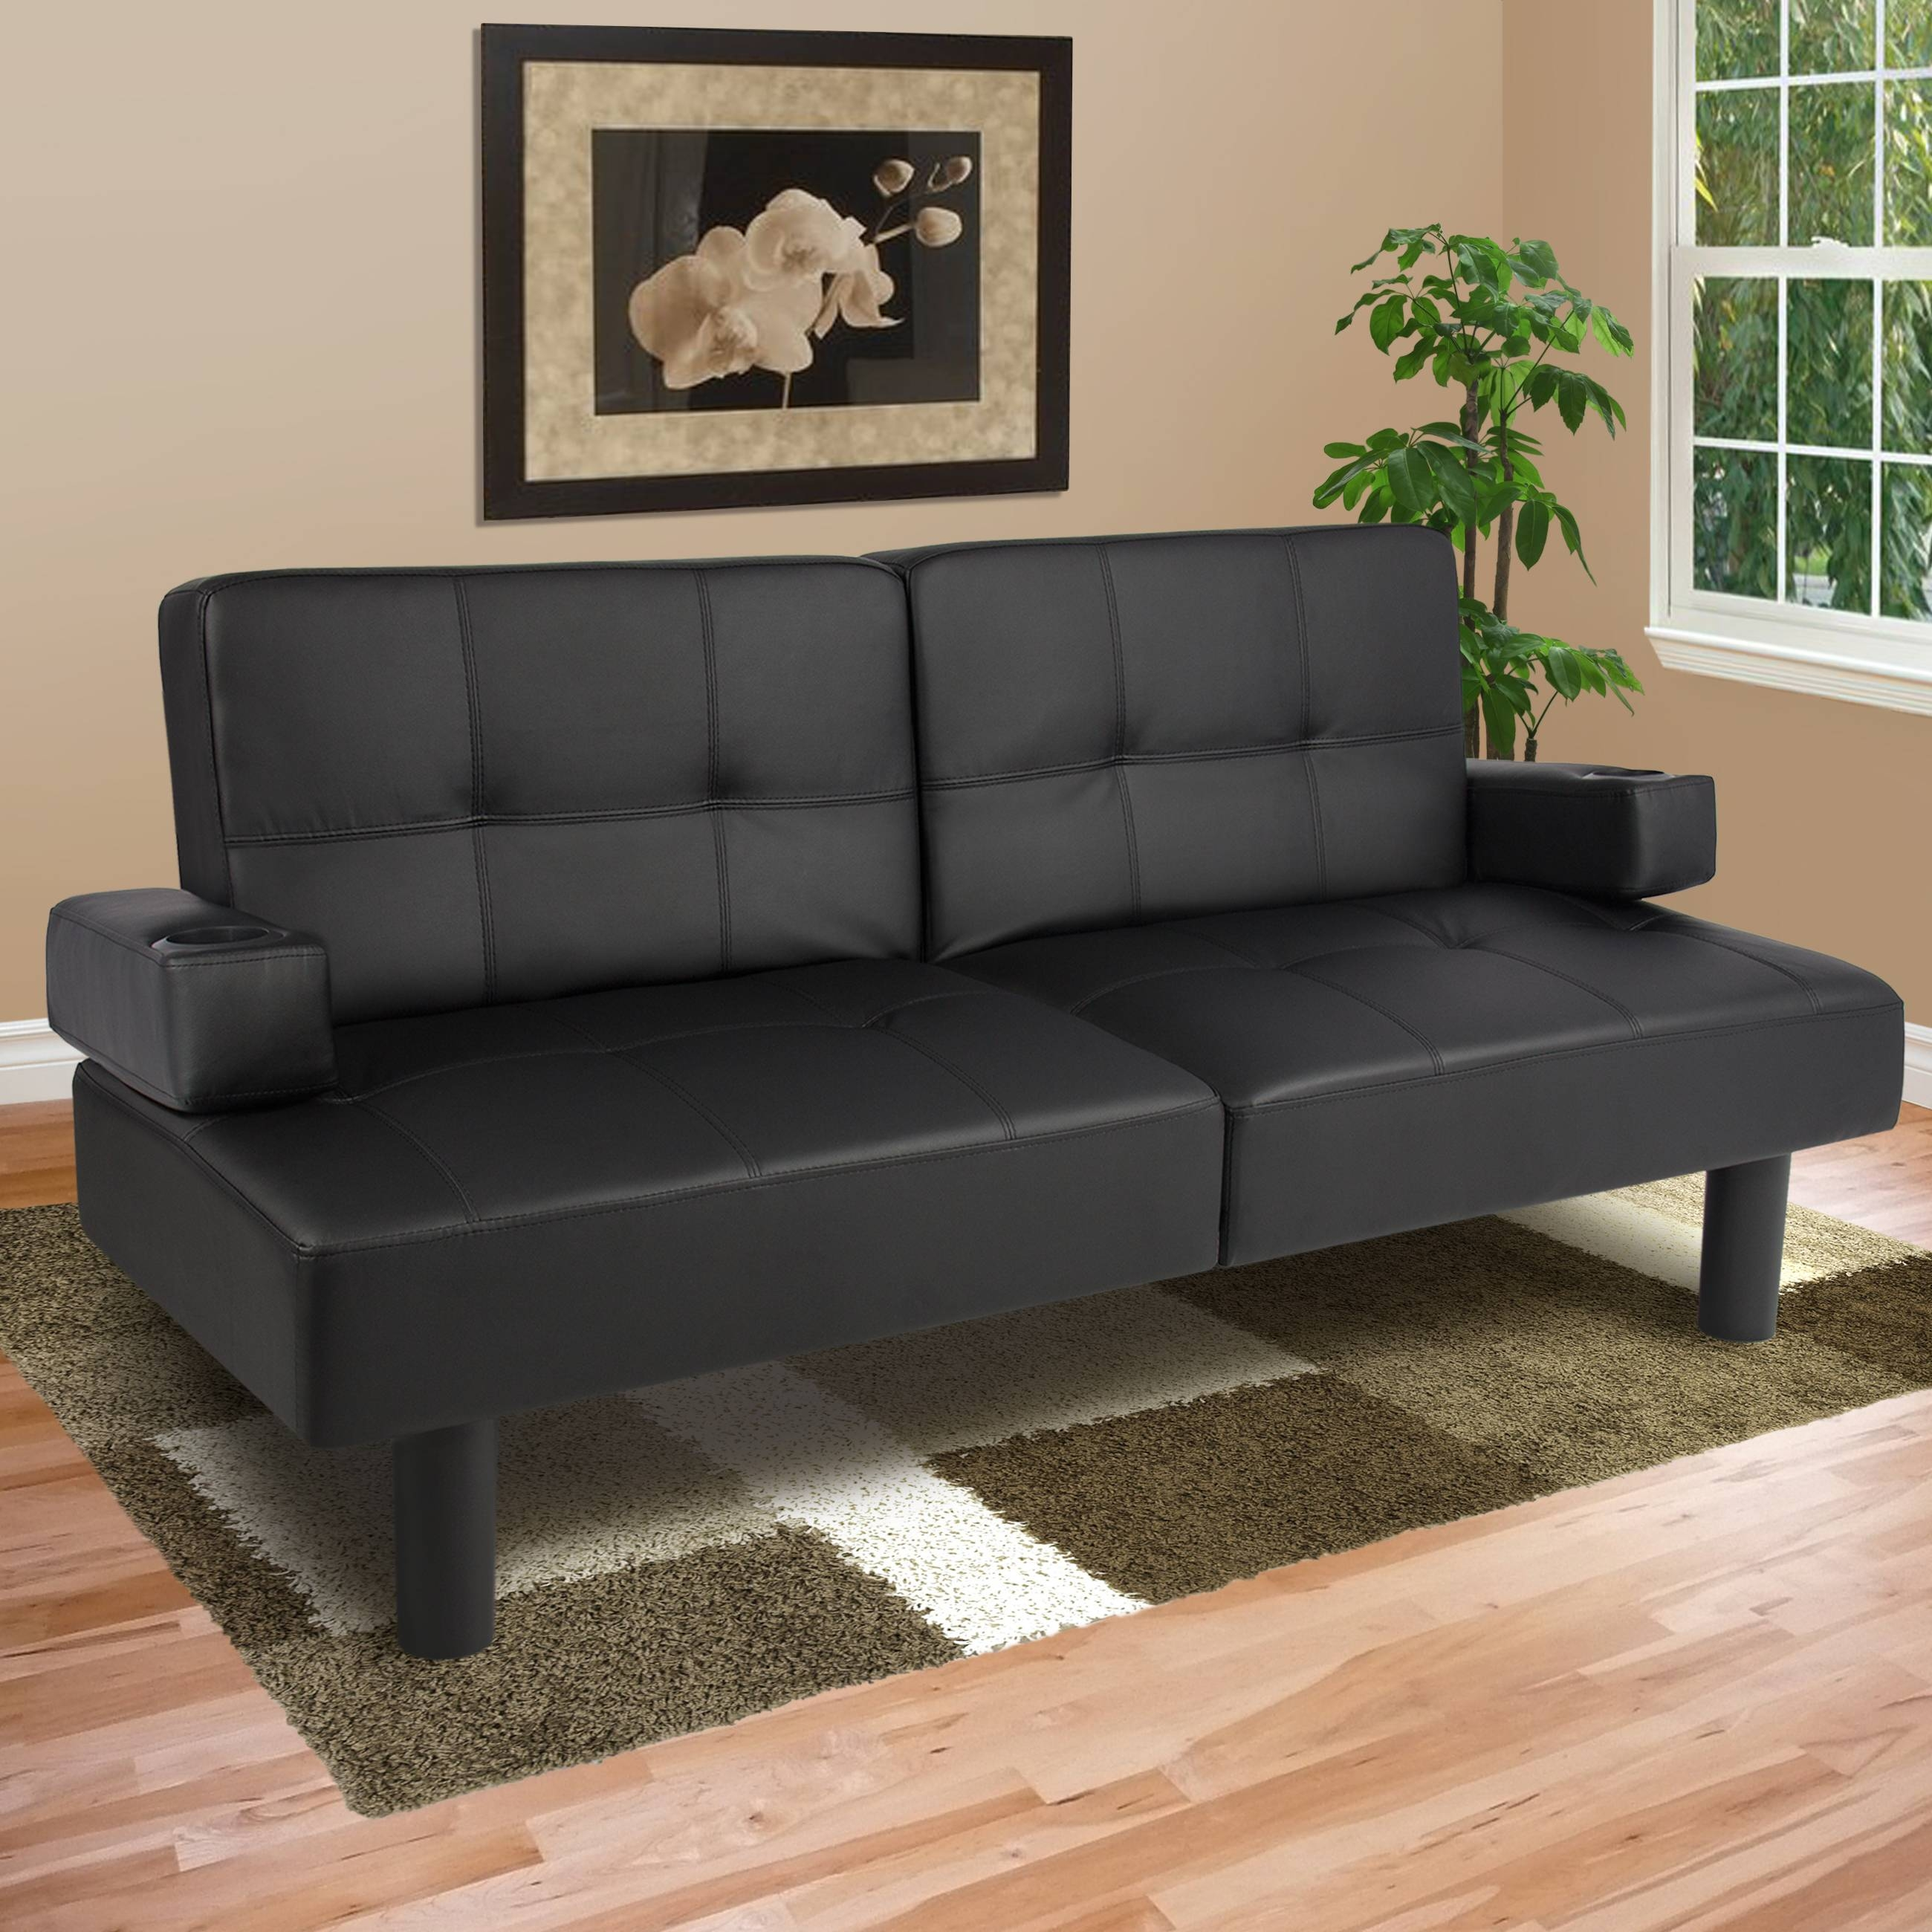 Best Choice Products Modern Leather Futon Sofa Bed Fold Up & Down intended for Leather Fouton Sofas (Image 1 of 15)